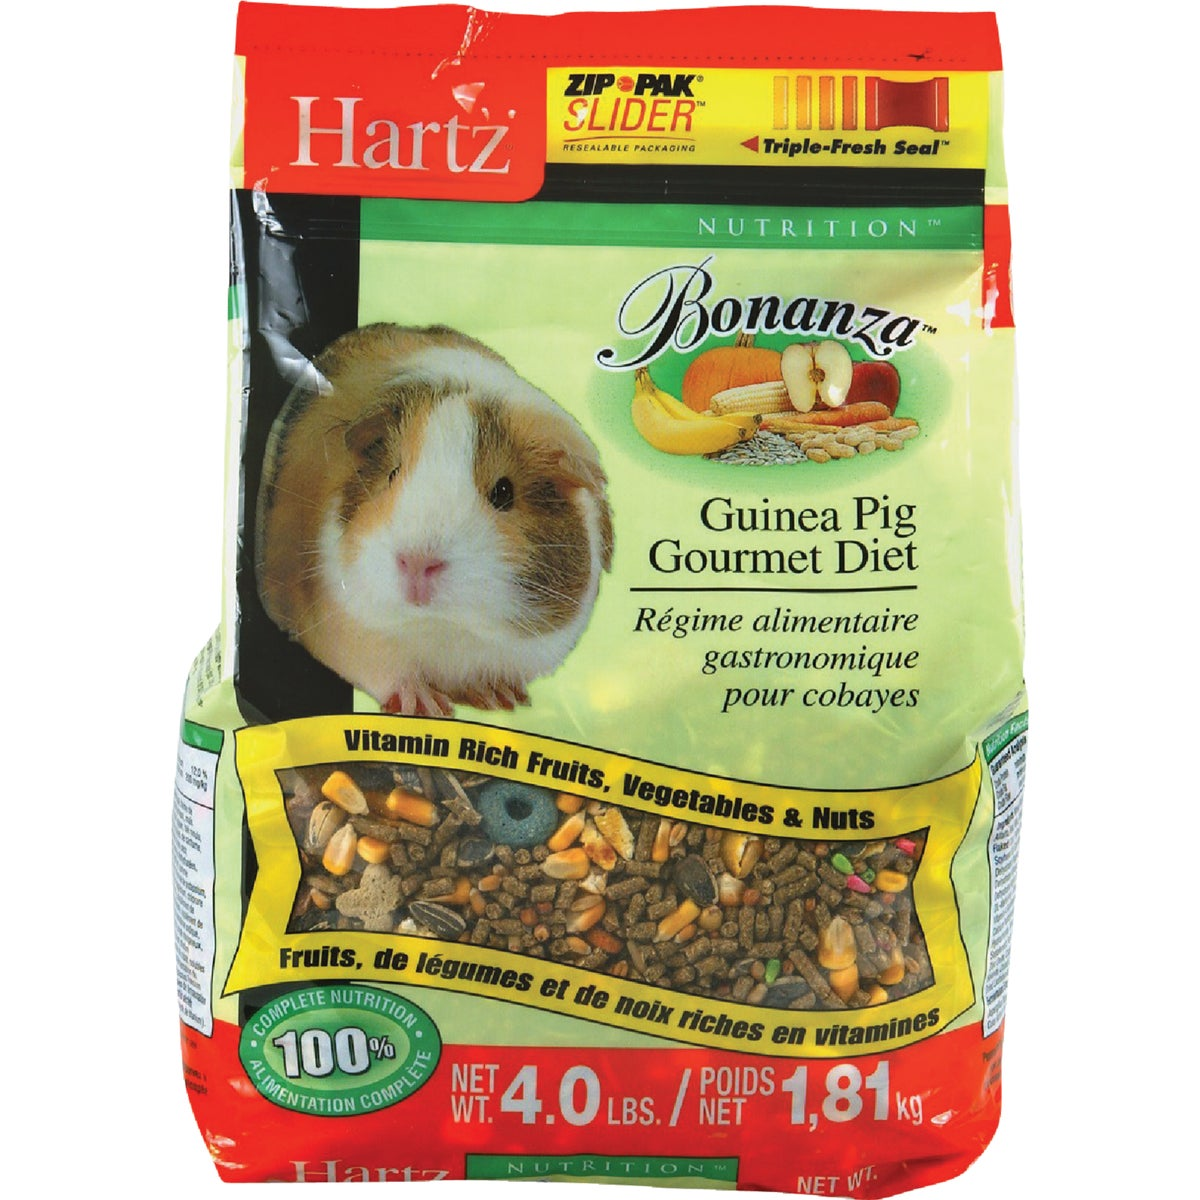 4LB GUINEA PIG FOOD - 3270097614 by Hartz Mountain Corp